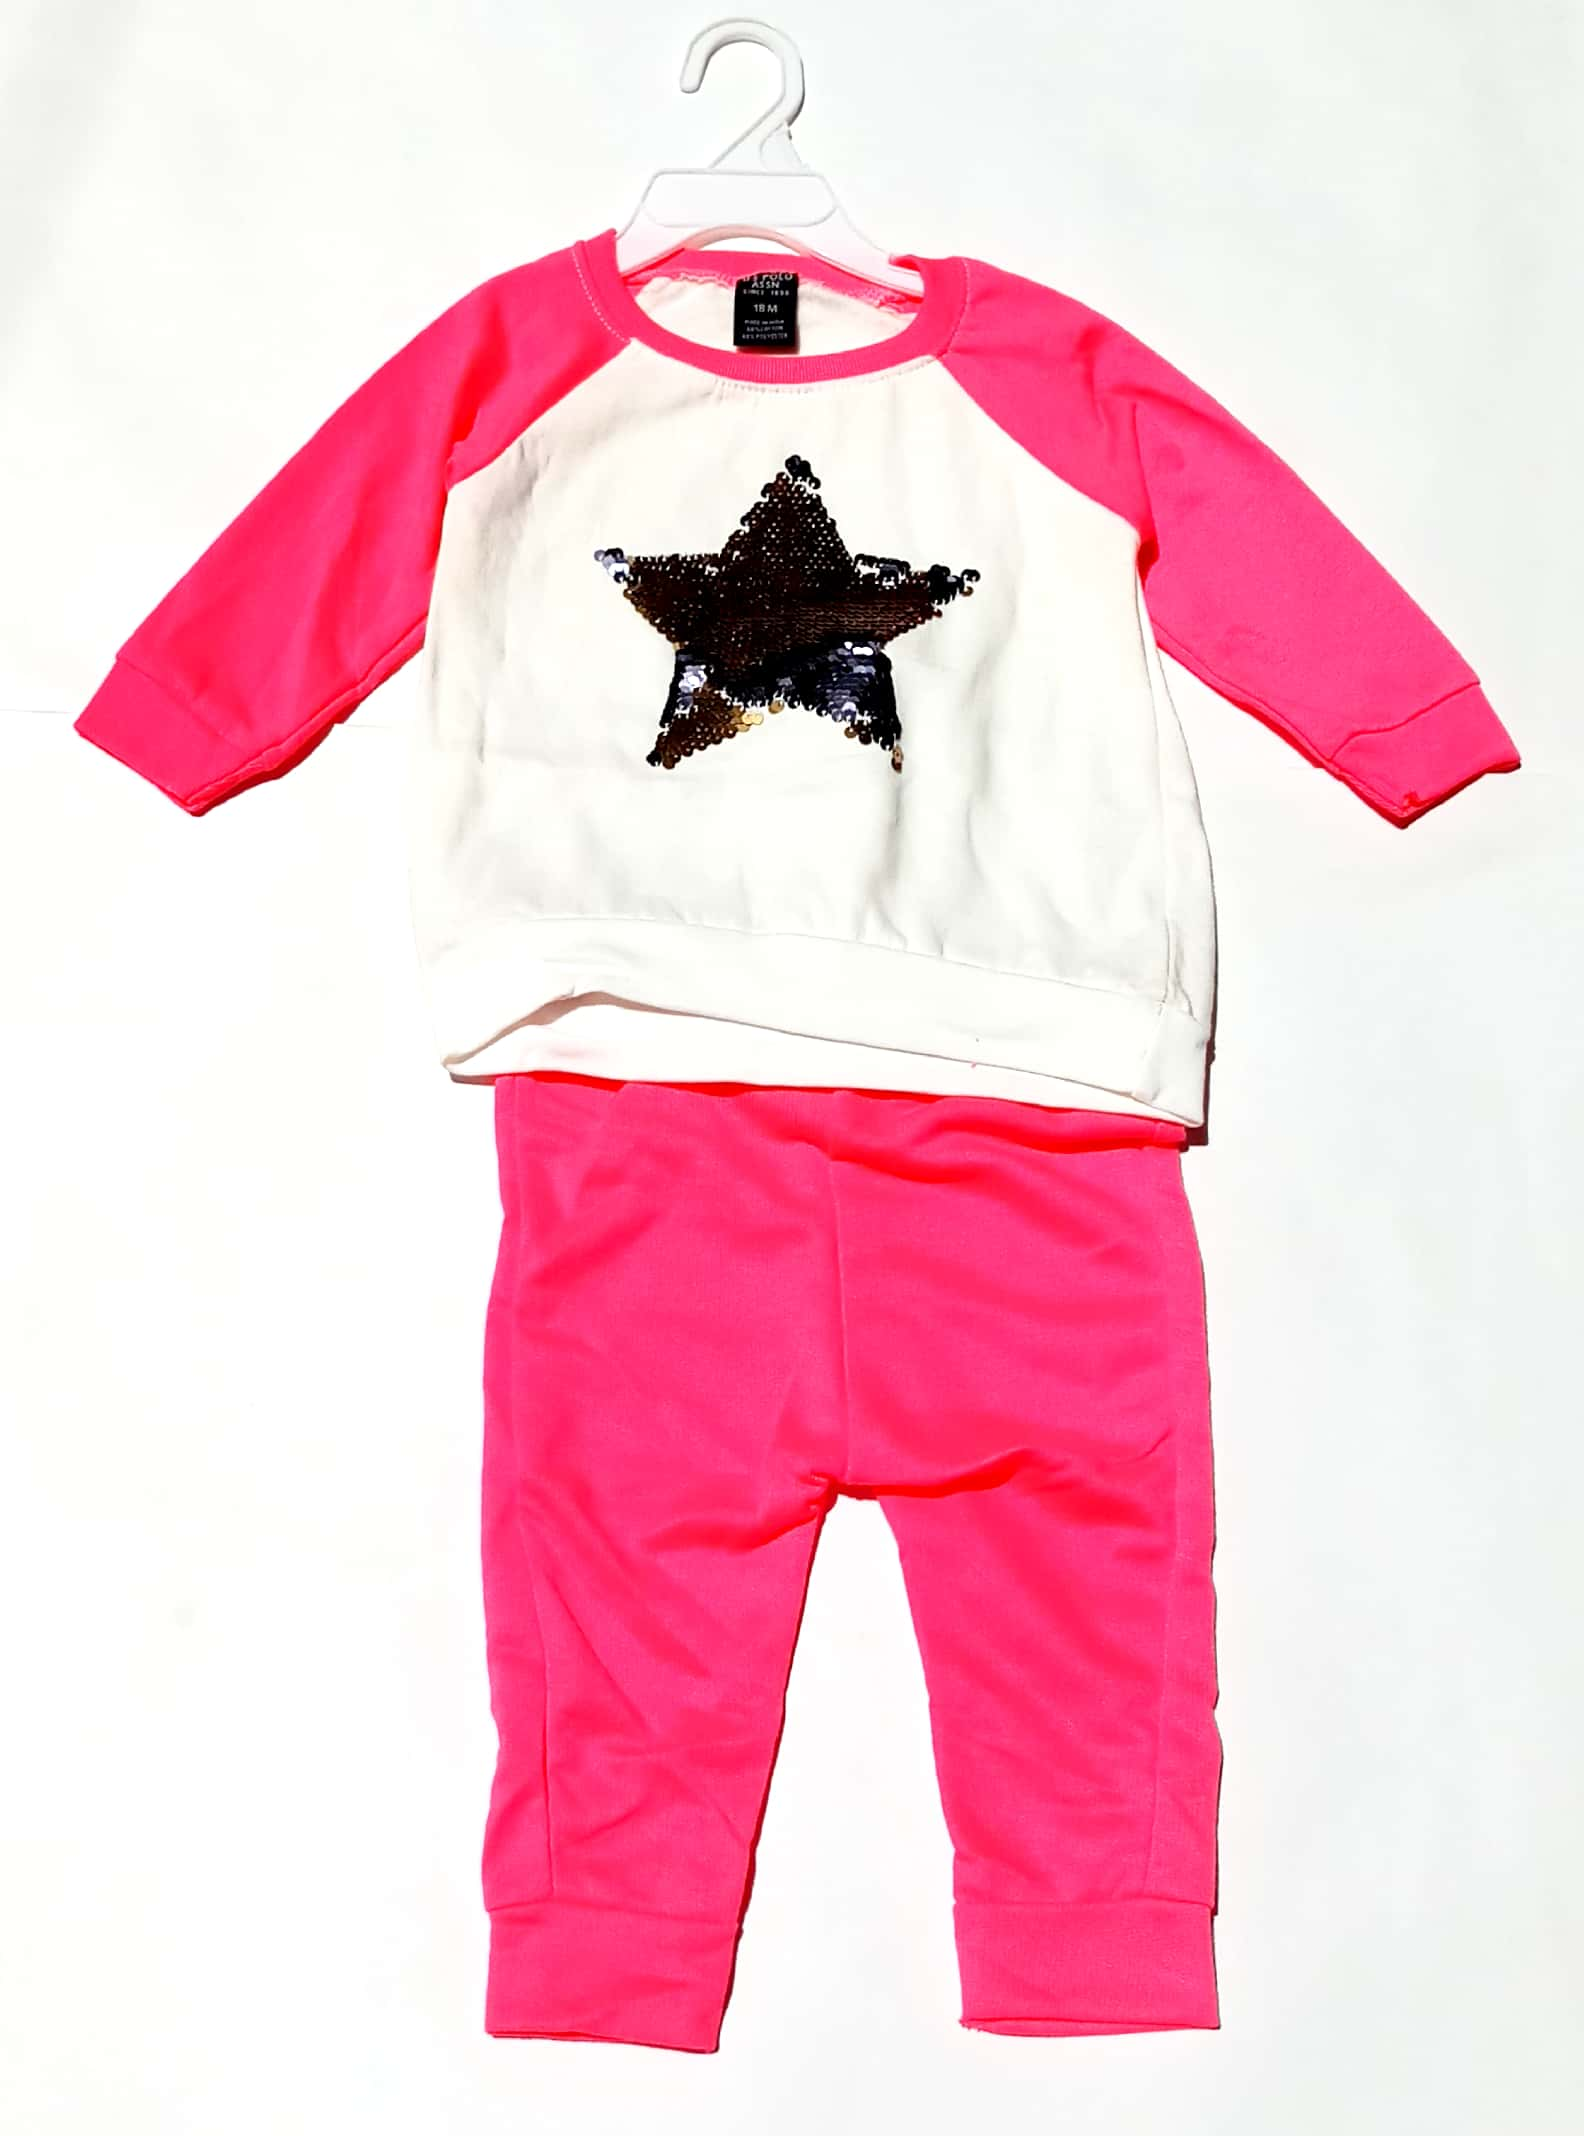 Baby Girls Polo Warm Cotton Full Sleeves Top Legging Set for 9 12 Months